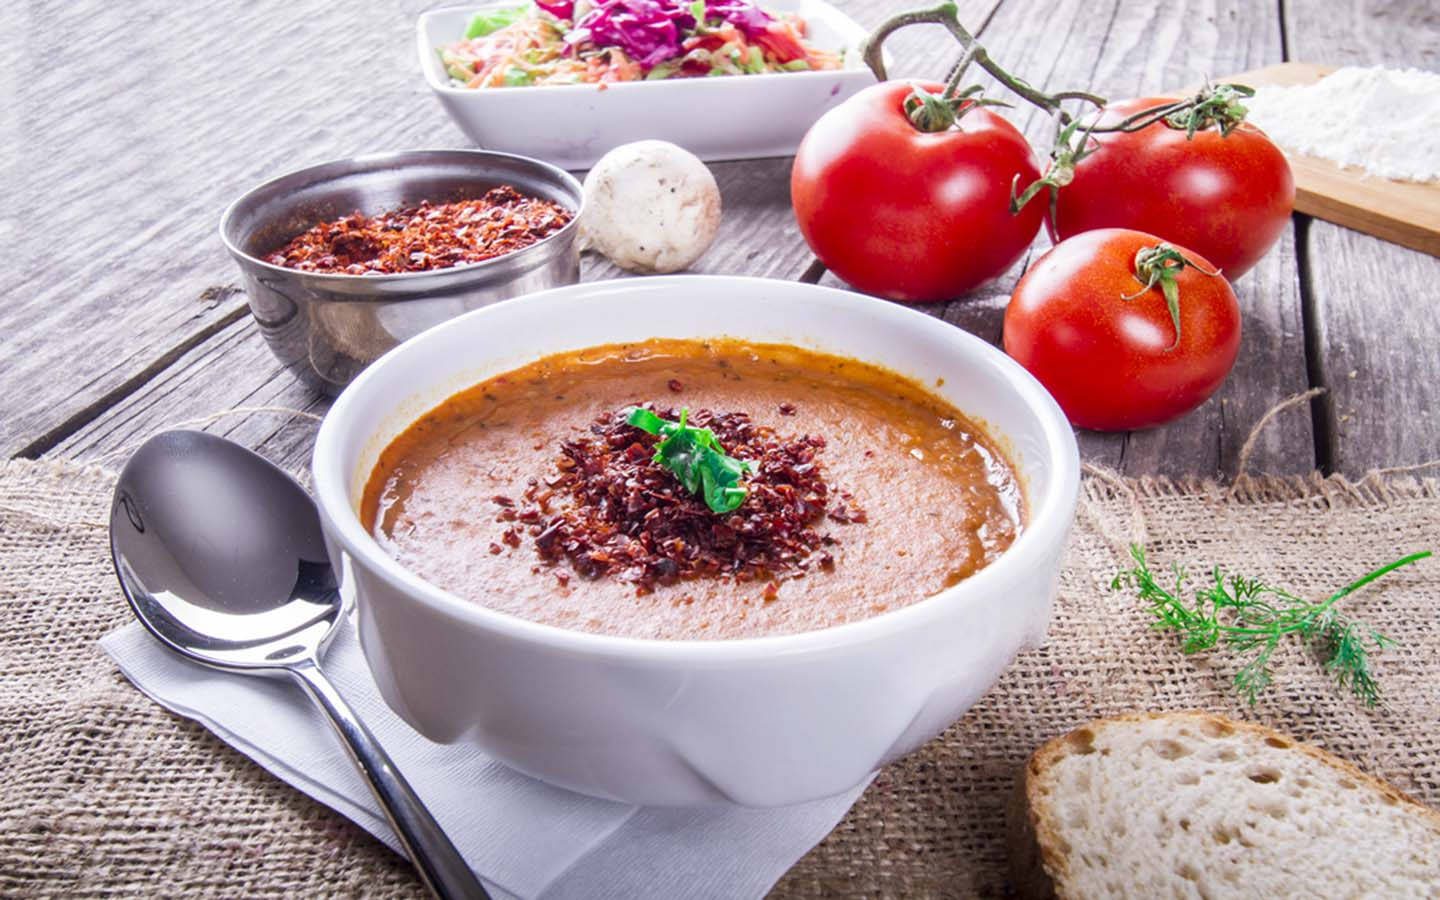 Turkish lentil soup with tarhana and bread